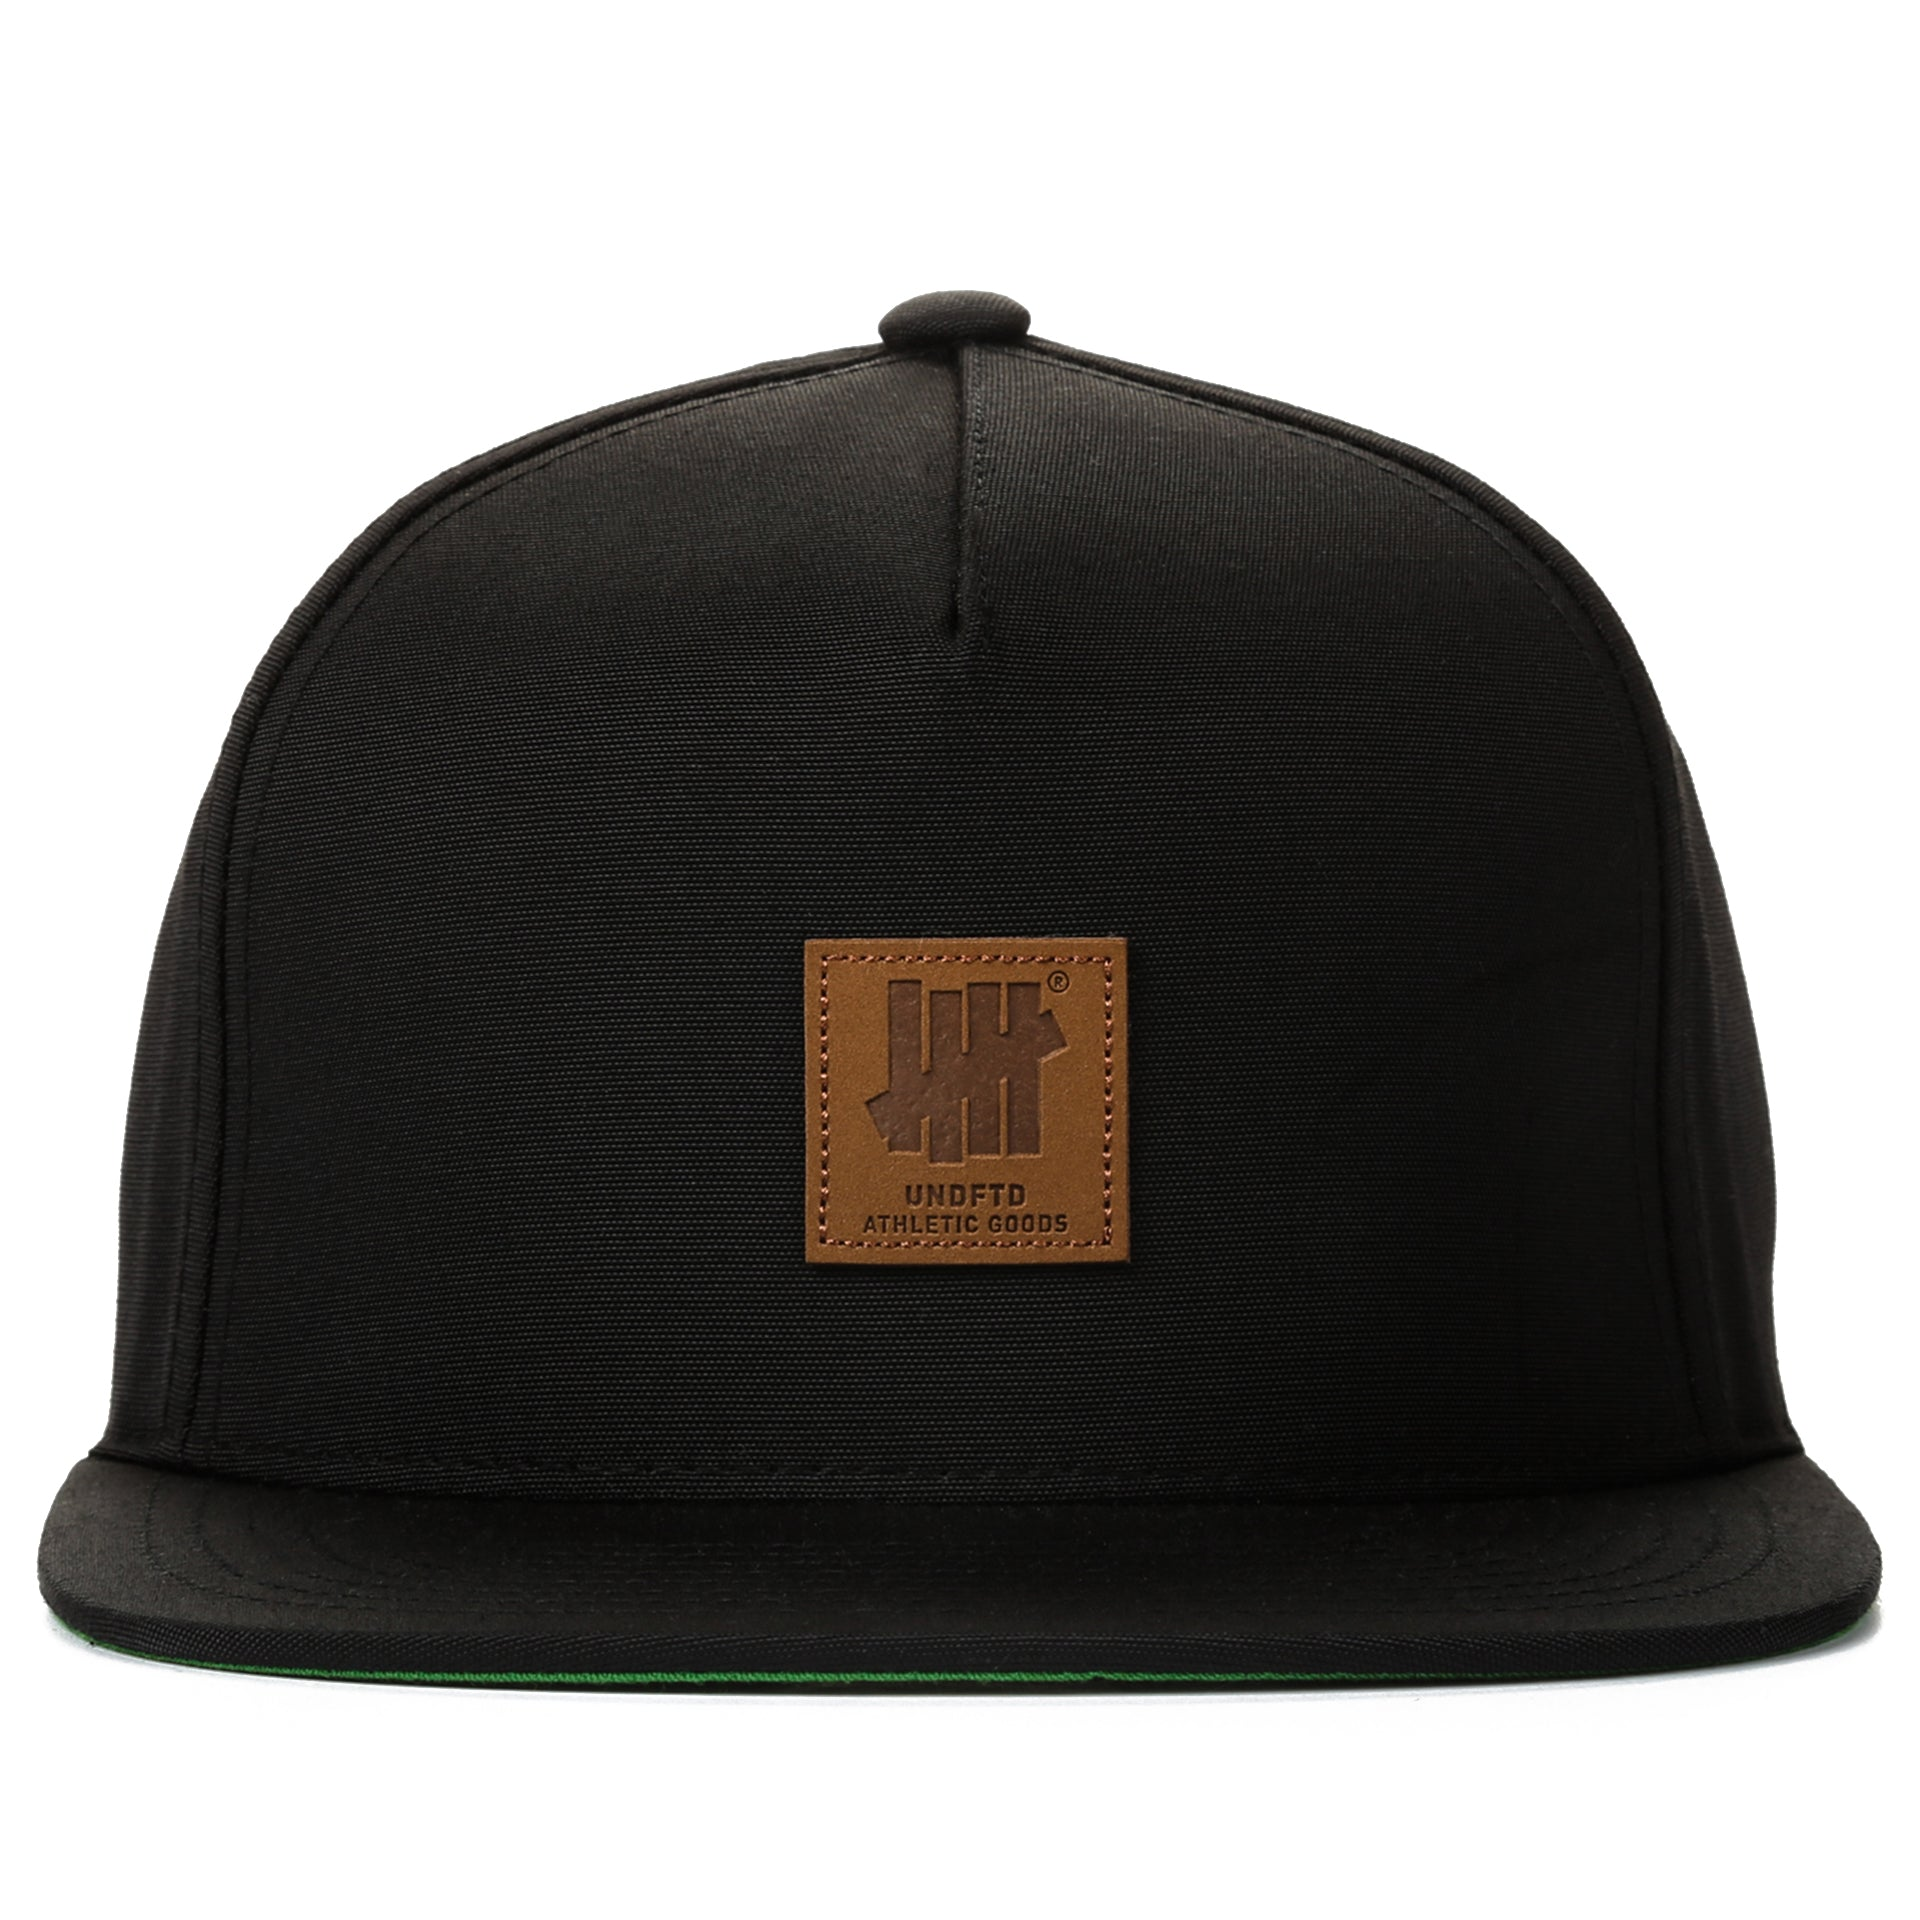 38ad7f4075d Undefeated Goods Cap - Black - New Star